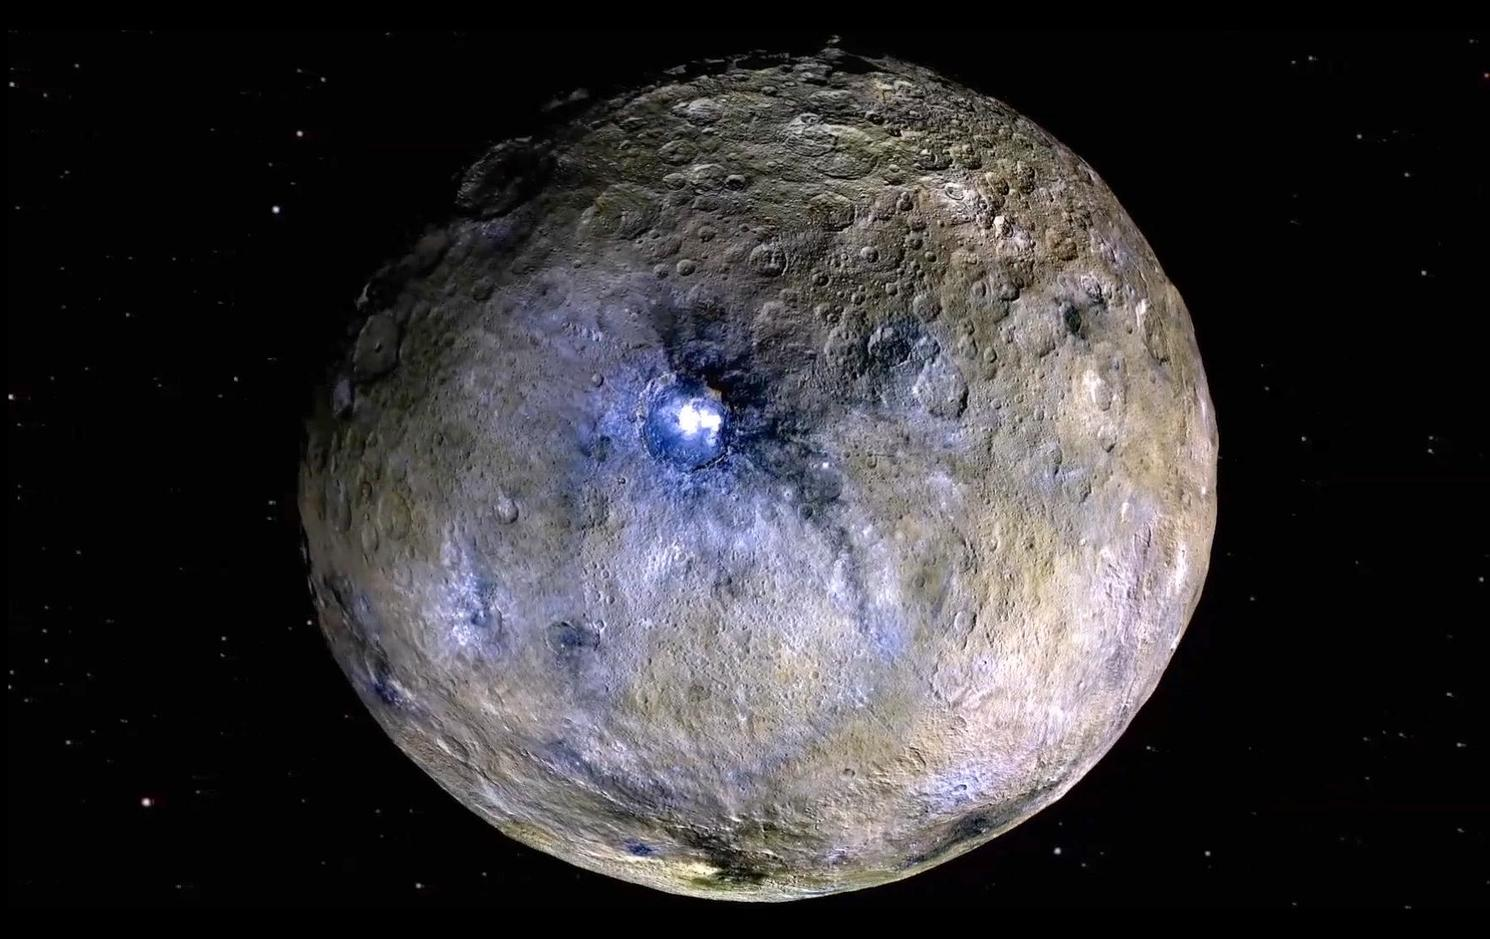 New dwarf planet in the outer solar system